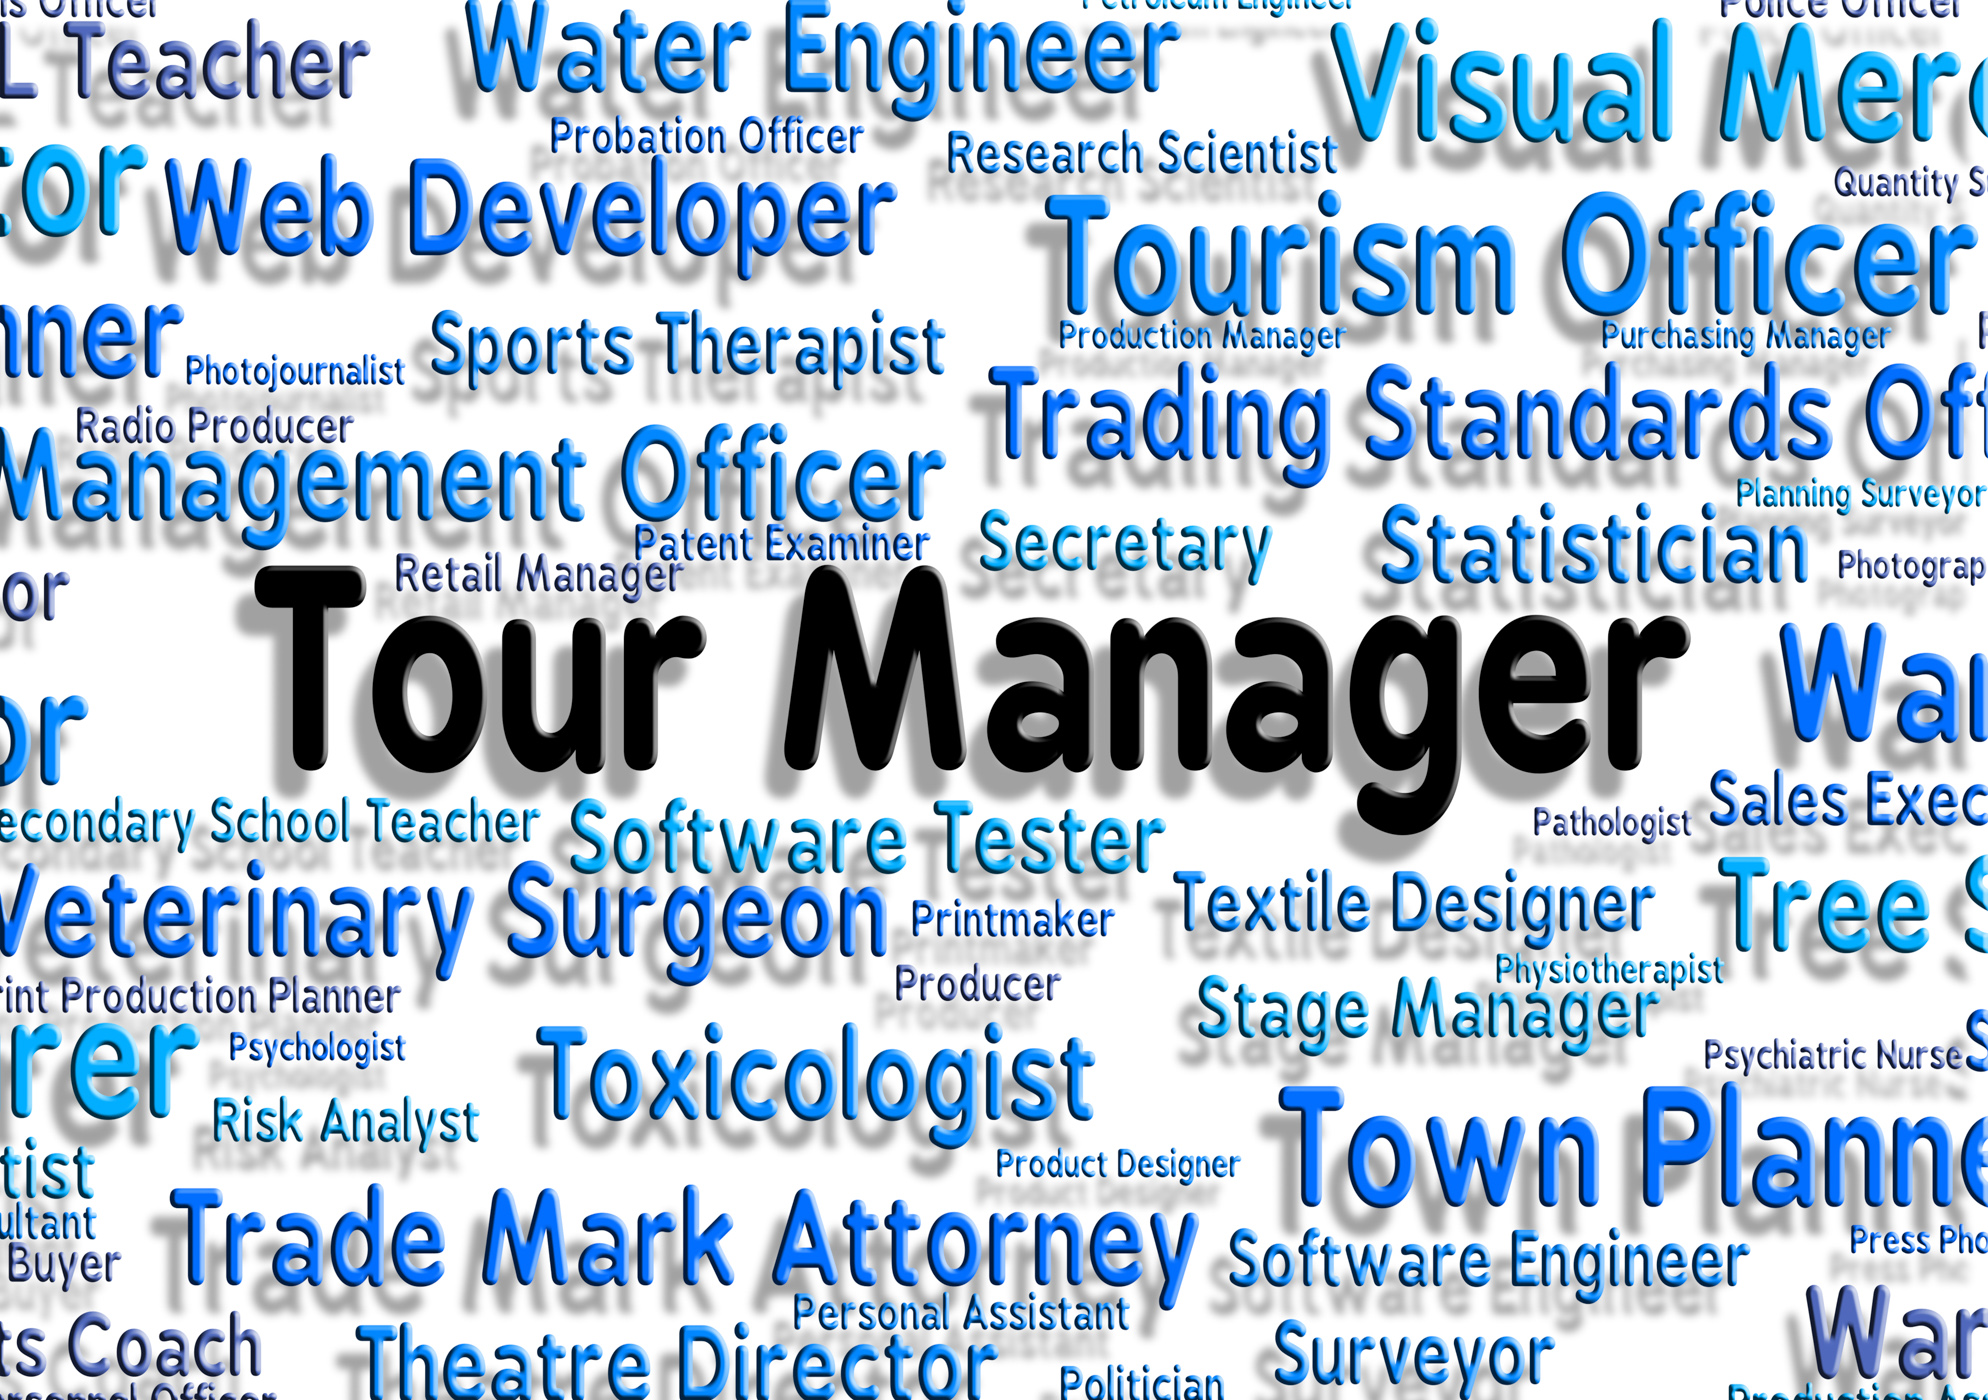 Tour Manager Represents Vacation Management And Hiring, Administrator, Travel, Principal, Proprietor, HQ Photo